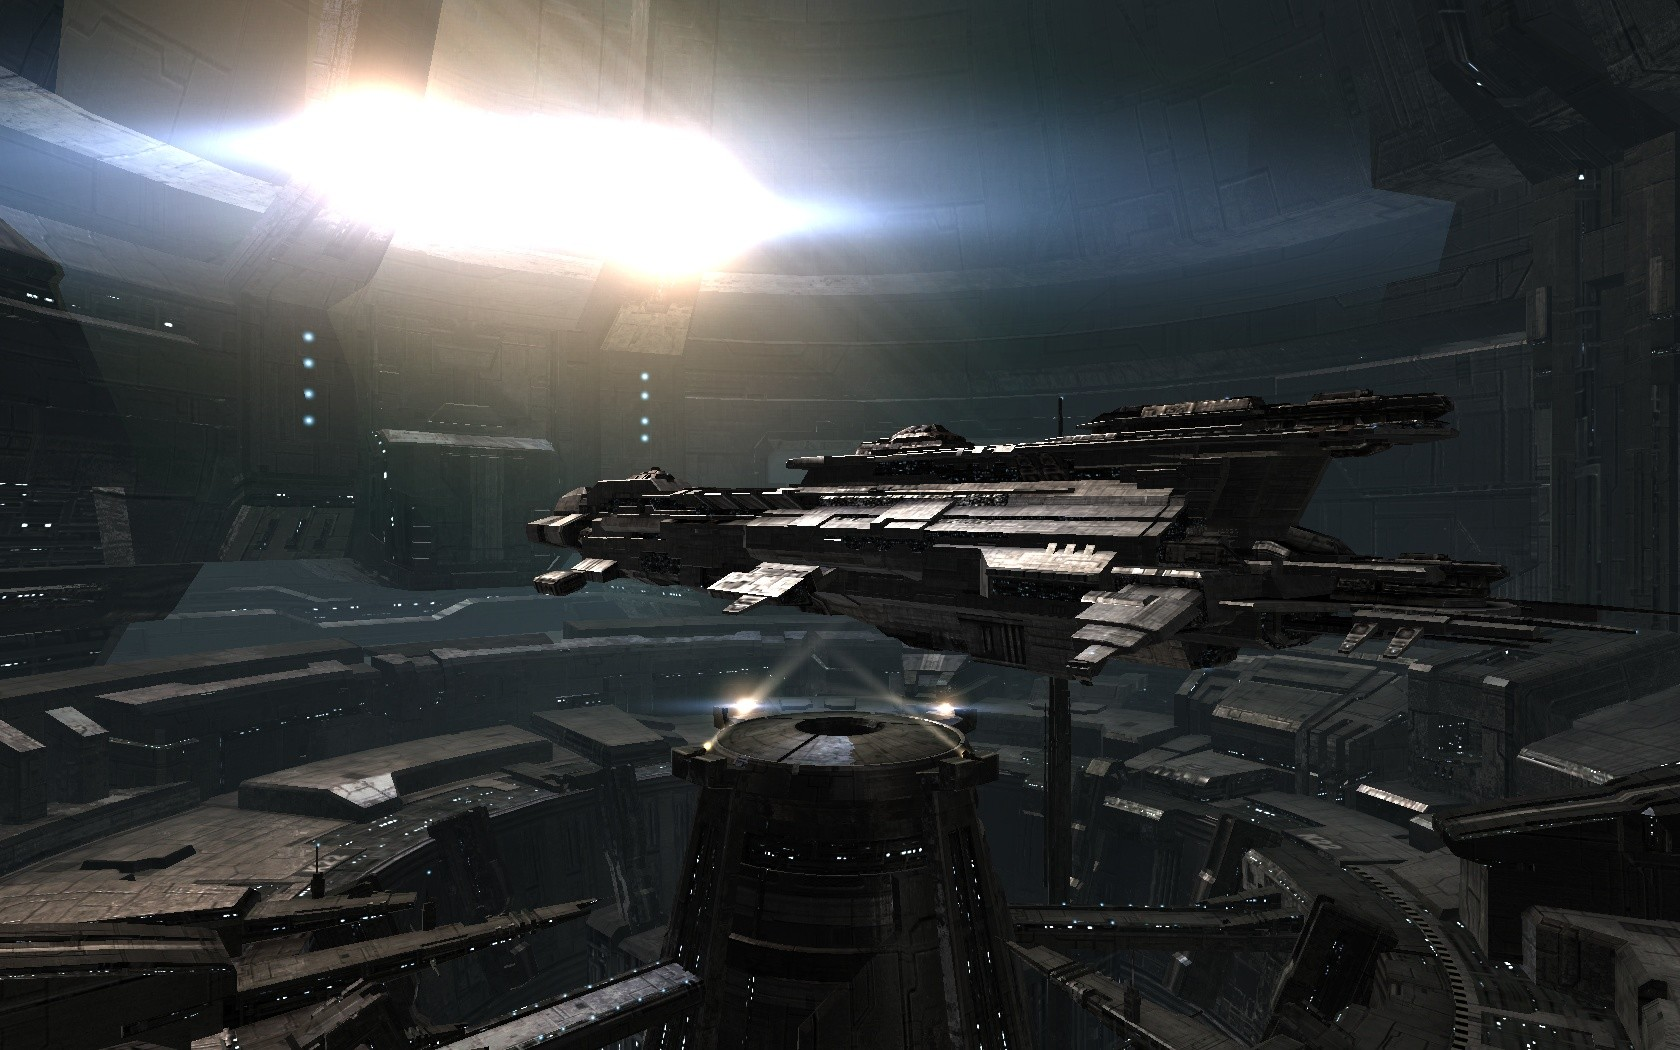 EVE Online - Chimera carrier in EVE Online with the new Trinity engine.